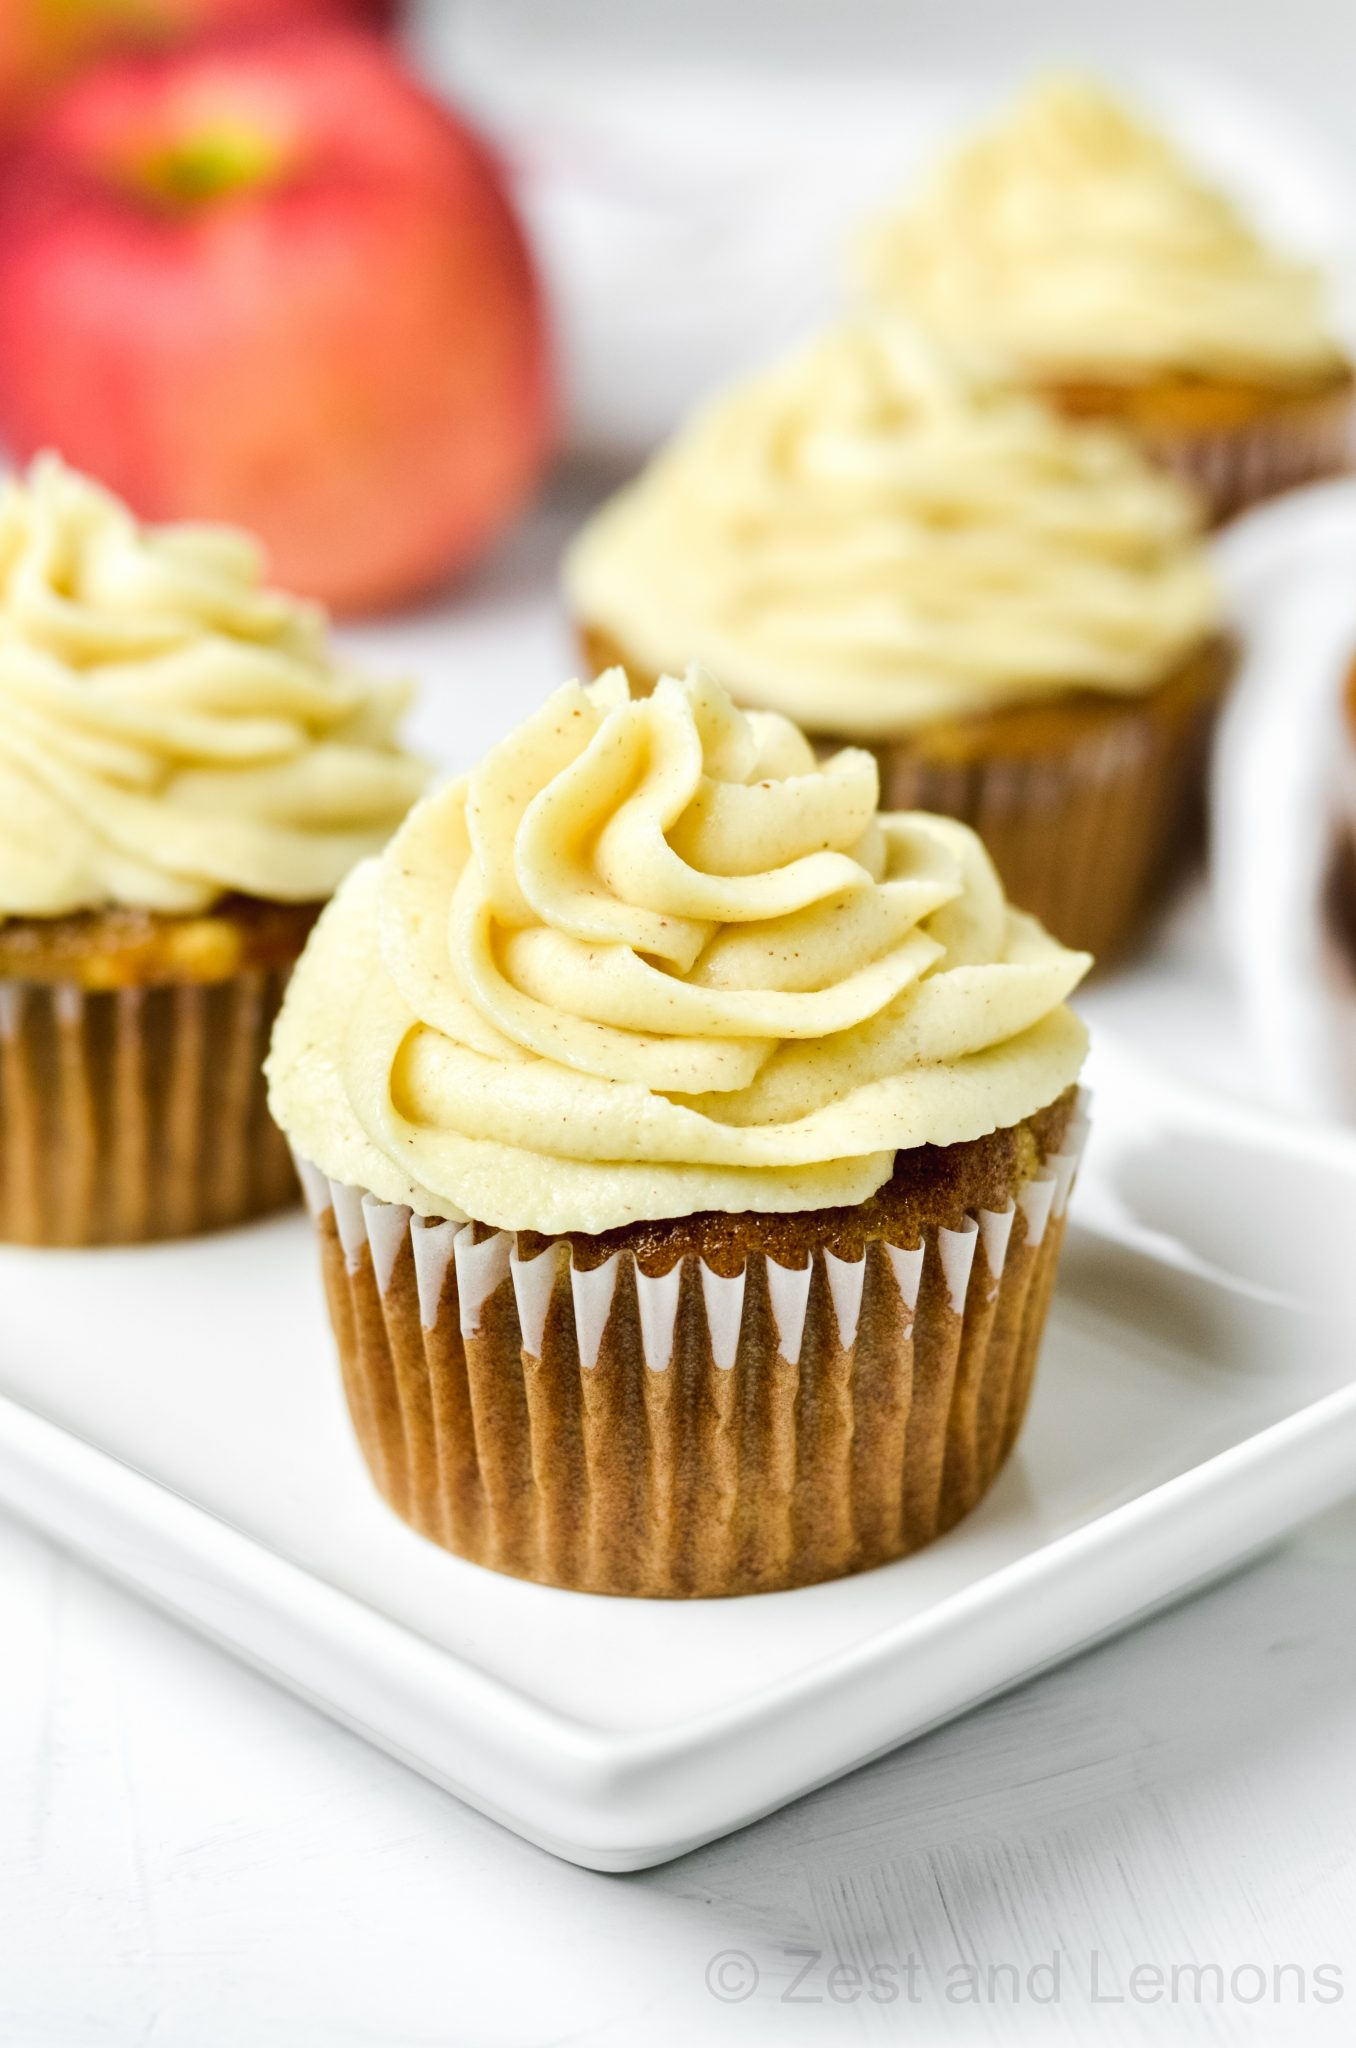 Gluten Free Apple Spice Cupcakes with Cinnamon Mascarpone Frosting